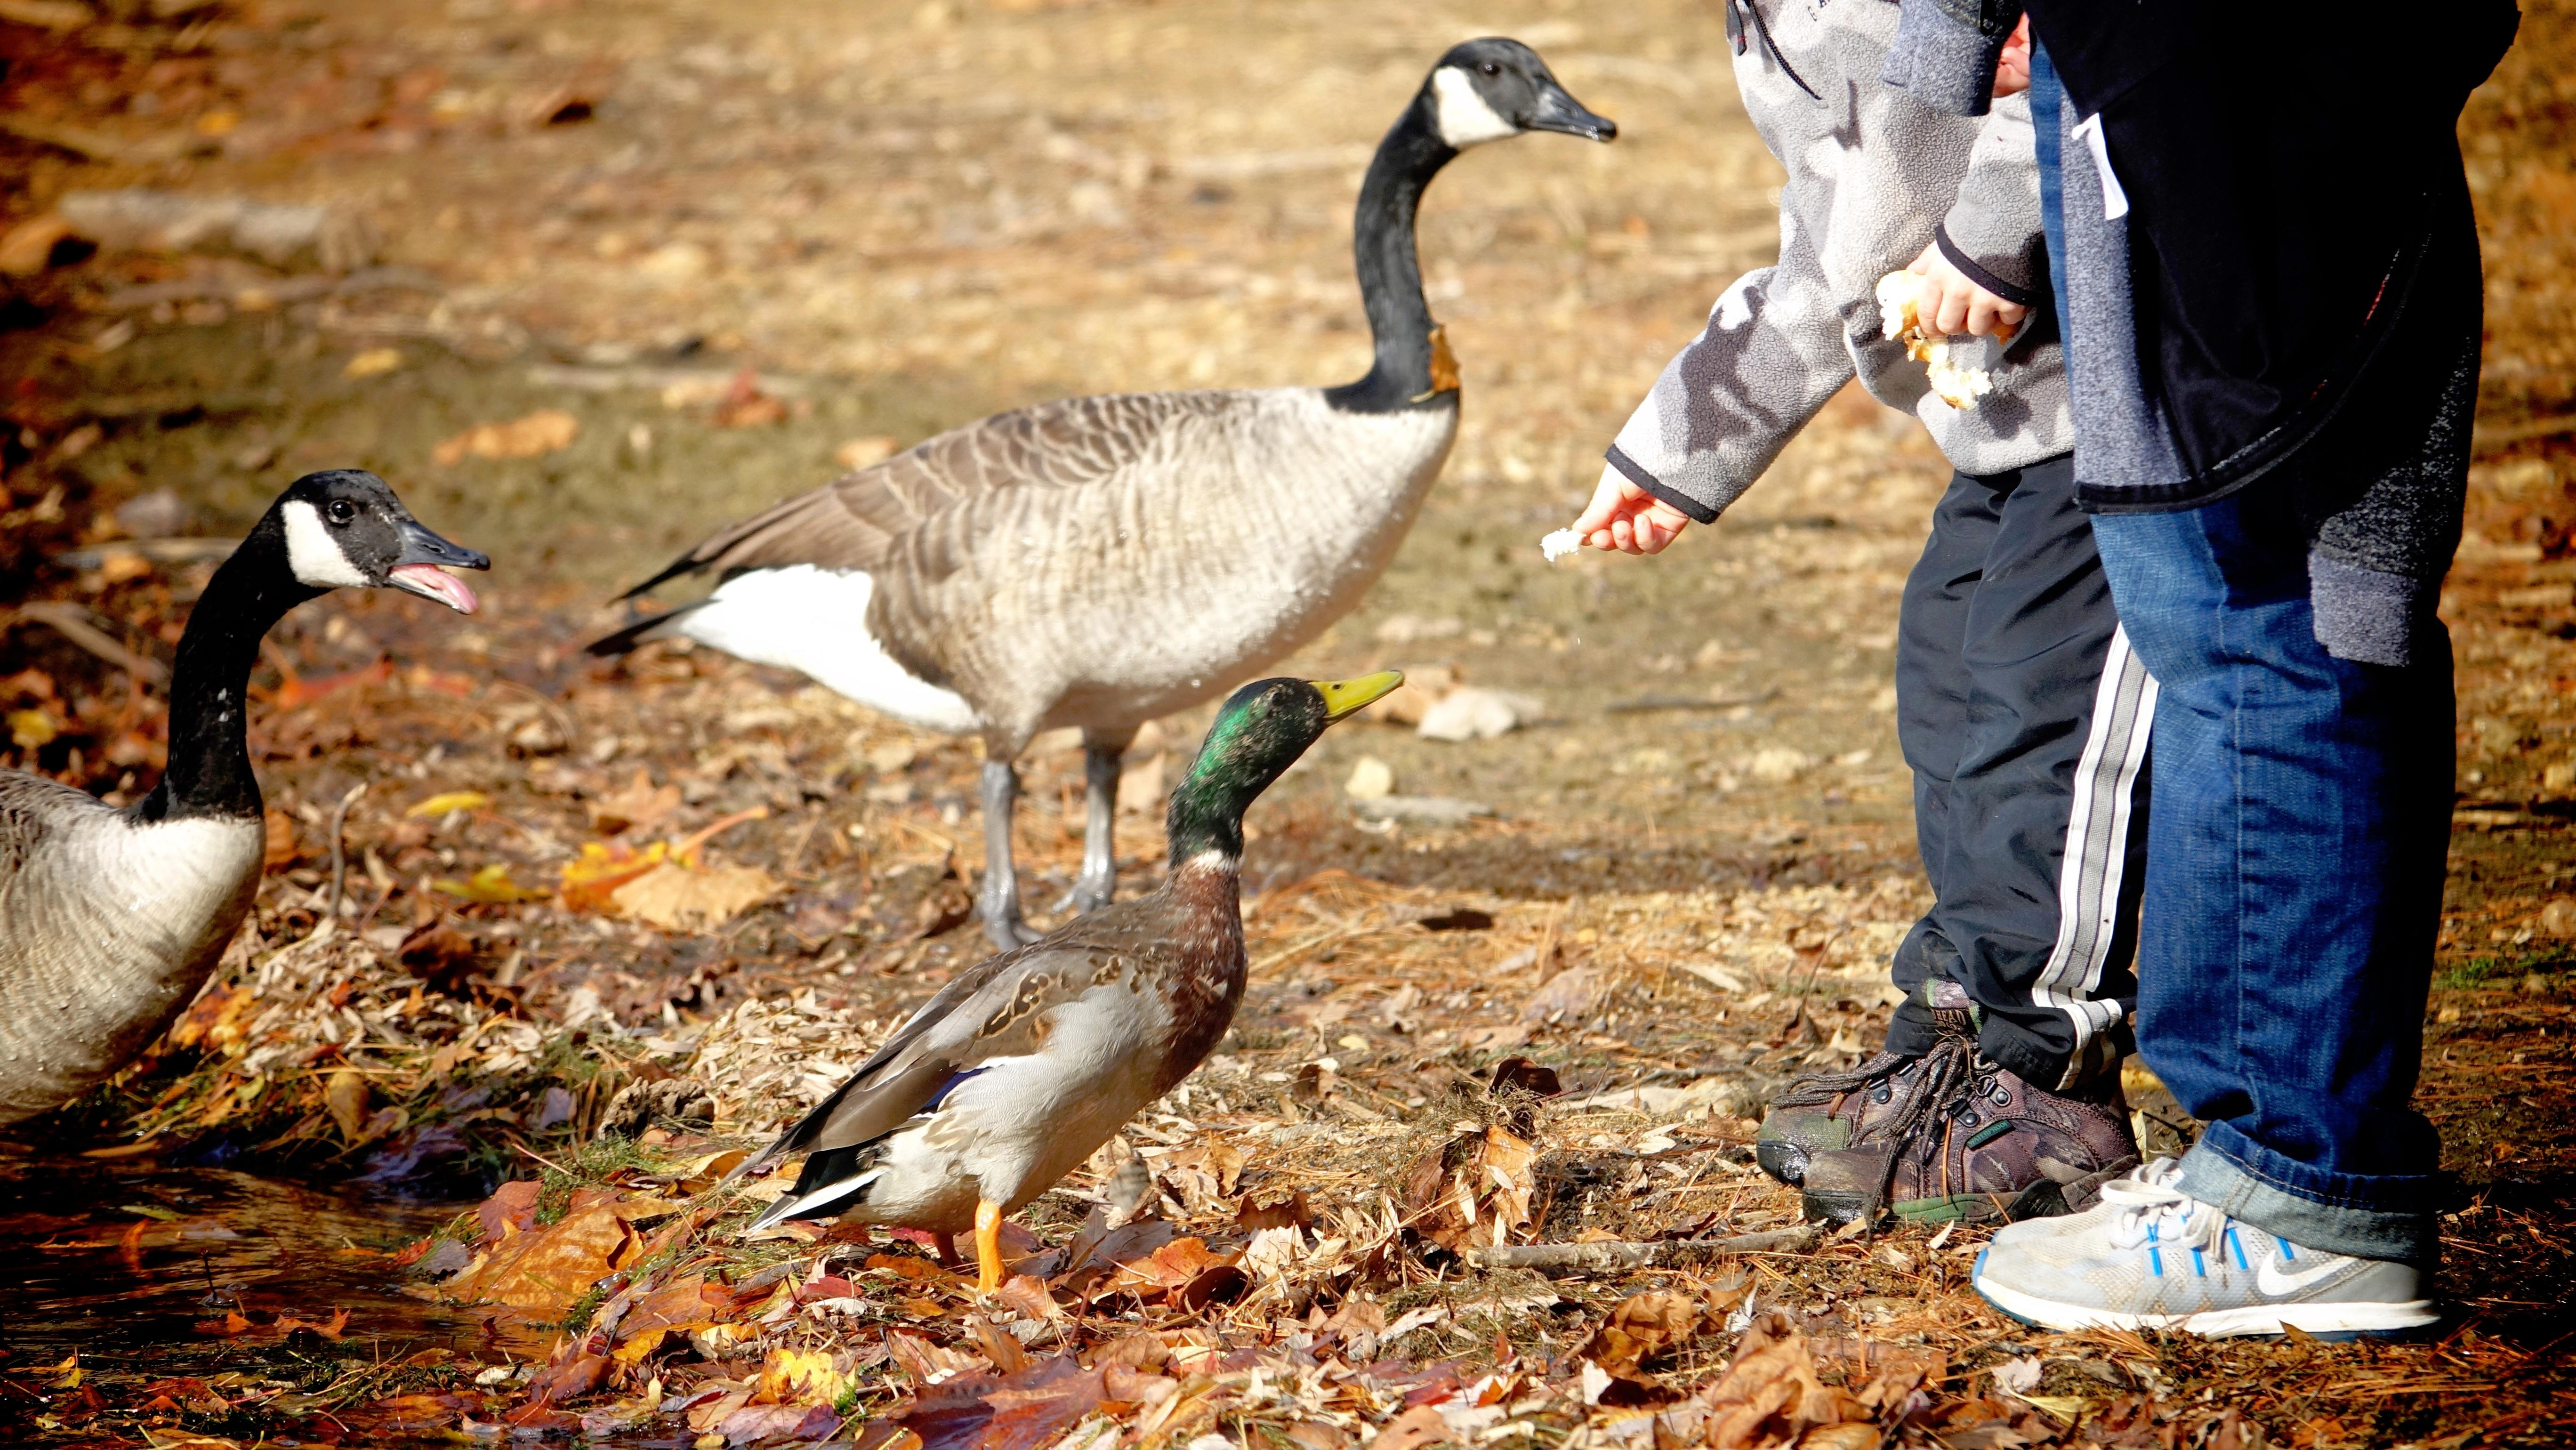 People Urged To Keep Feeding Ducks Bread